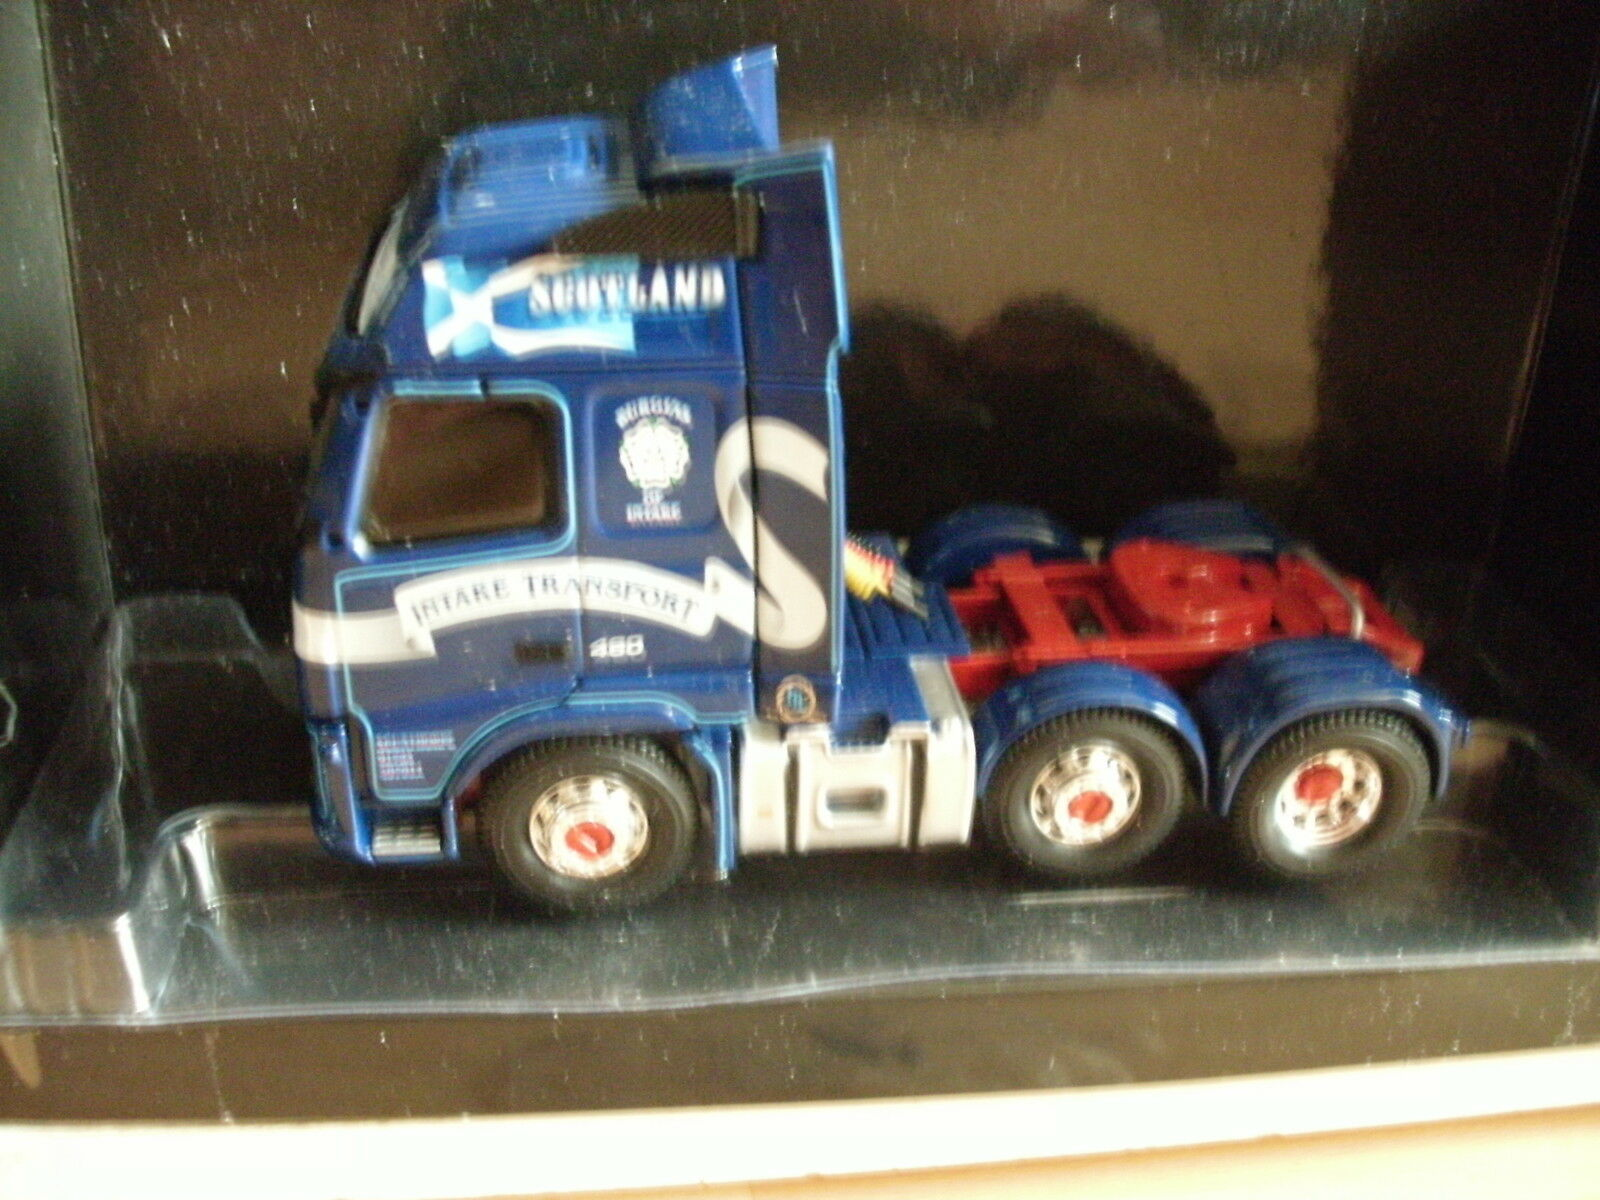 Corgi Volvo 460 Intake Transport Scunthorpe Scotland in Blau on 1 50